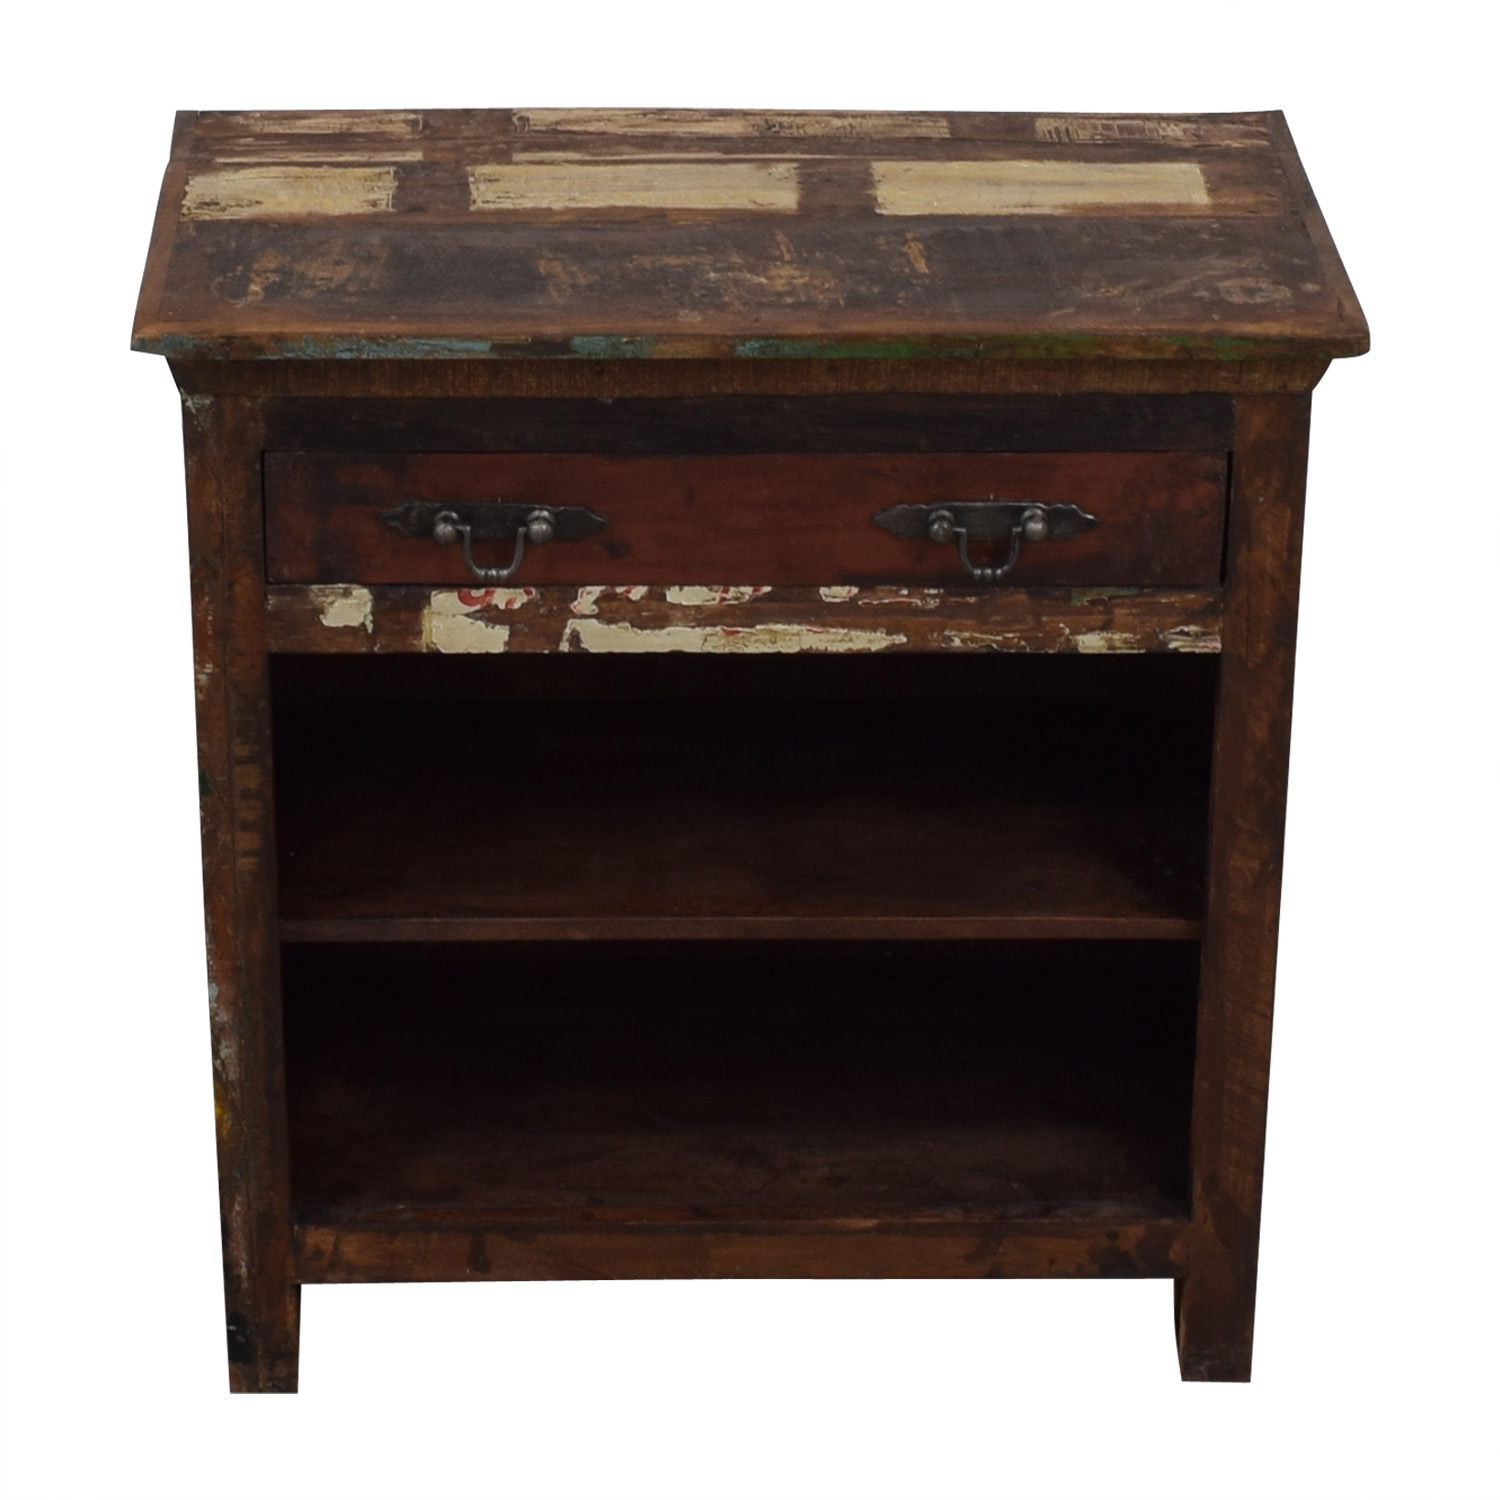 Rustic Single Drawer Accent Table second hand